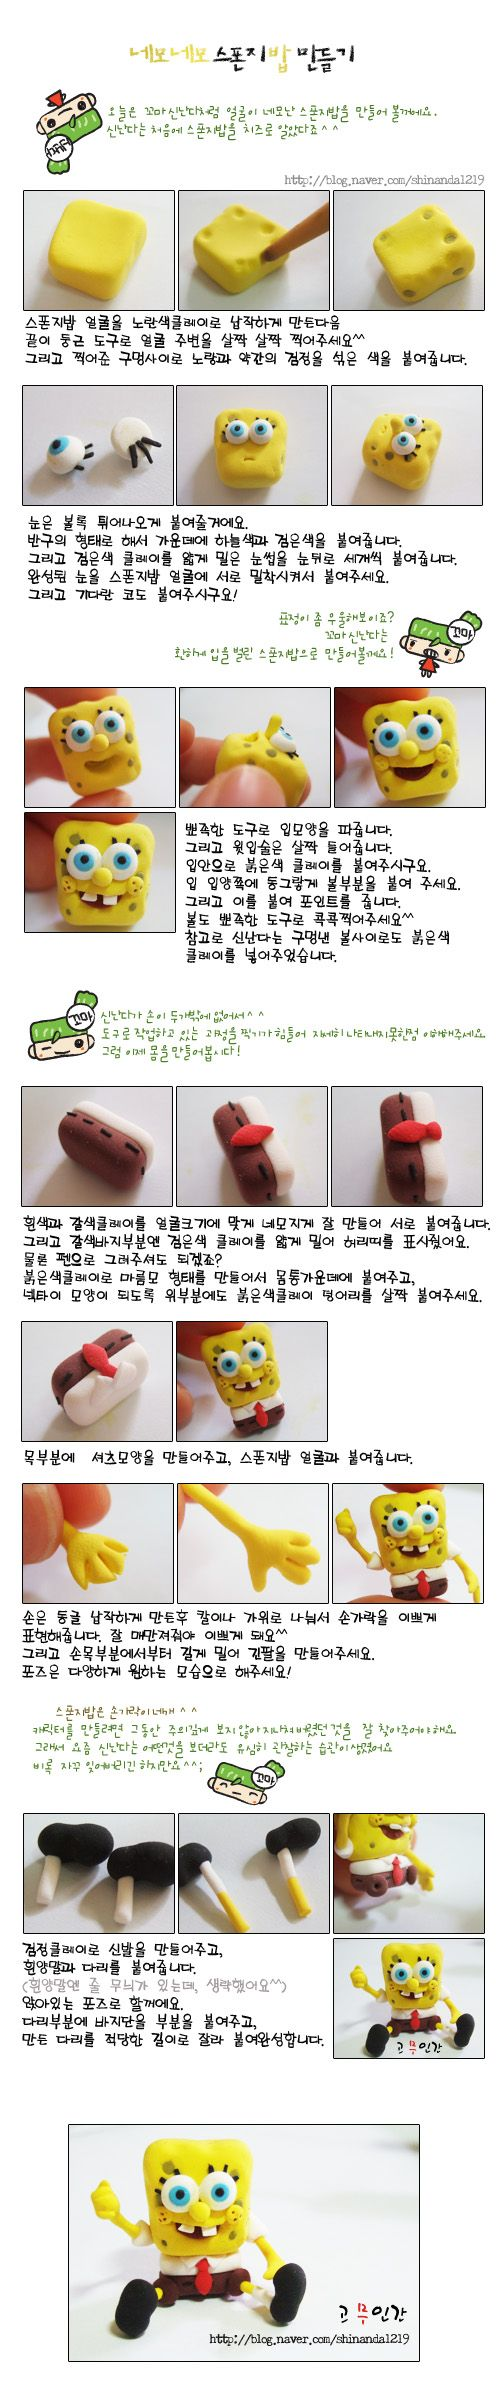 DIY Clay Spongebob